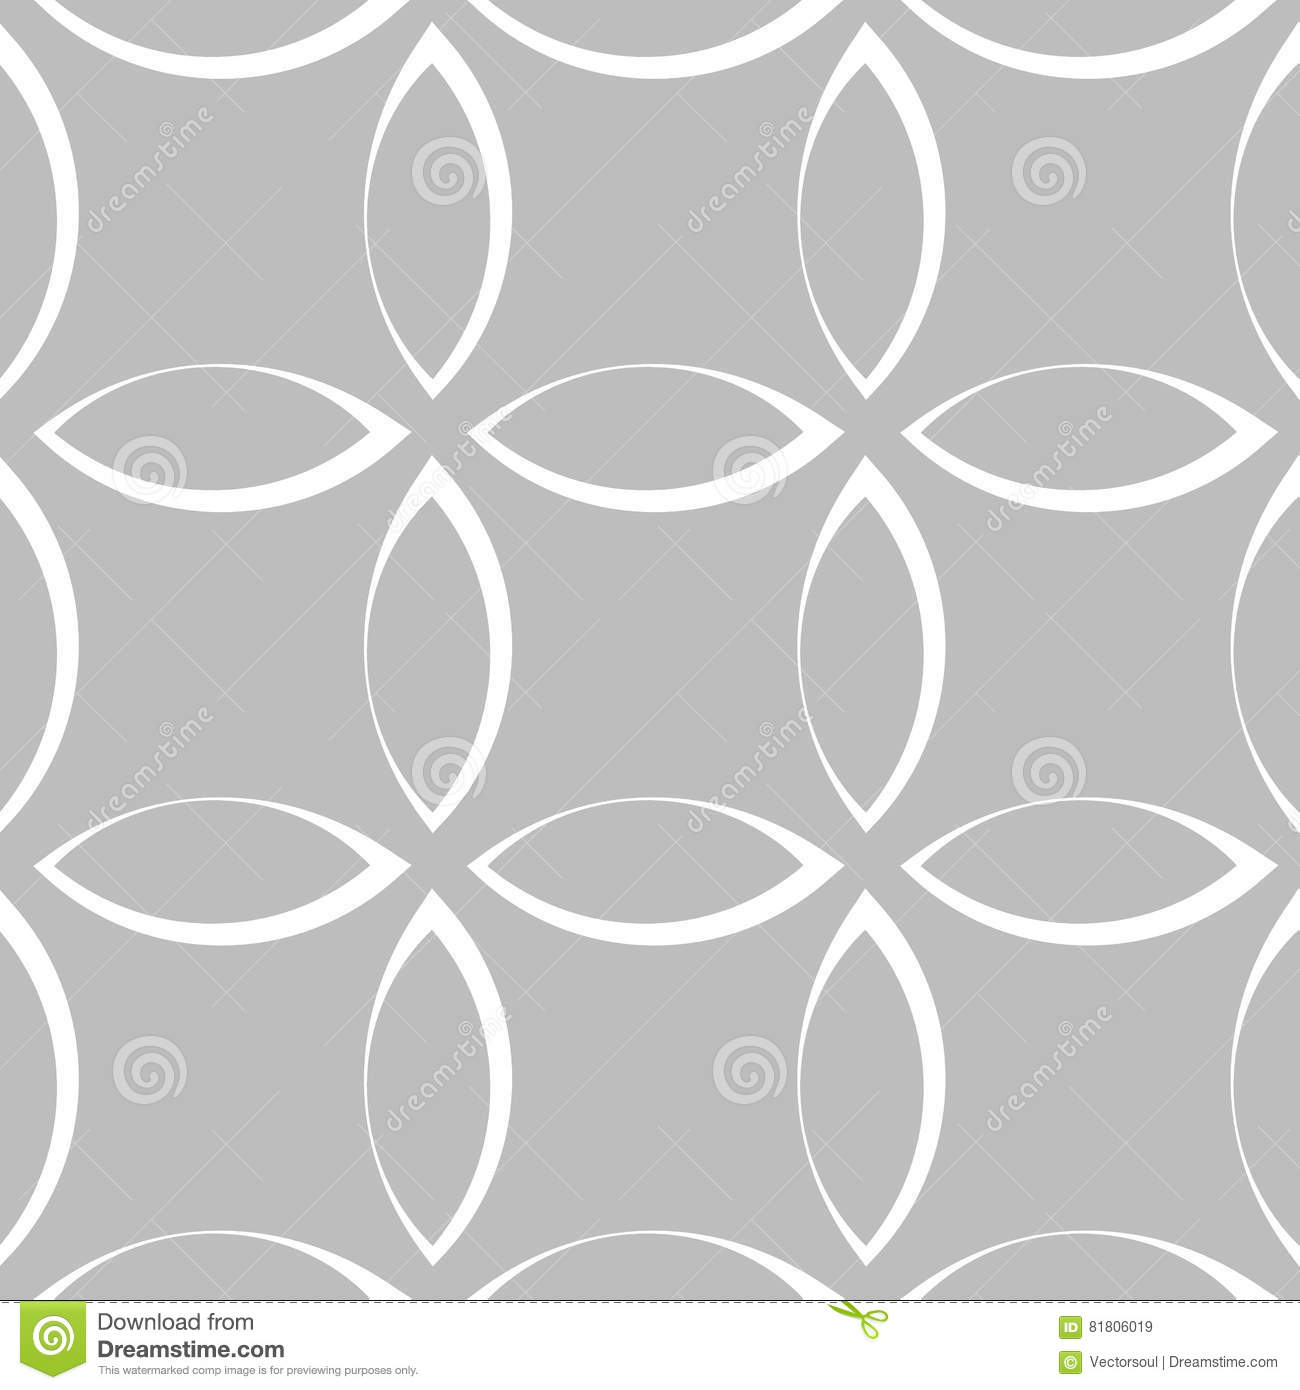 Monochrome repetitive pattern with petal / flower / leaf shapes.